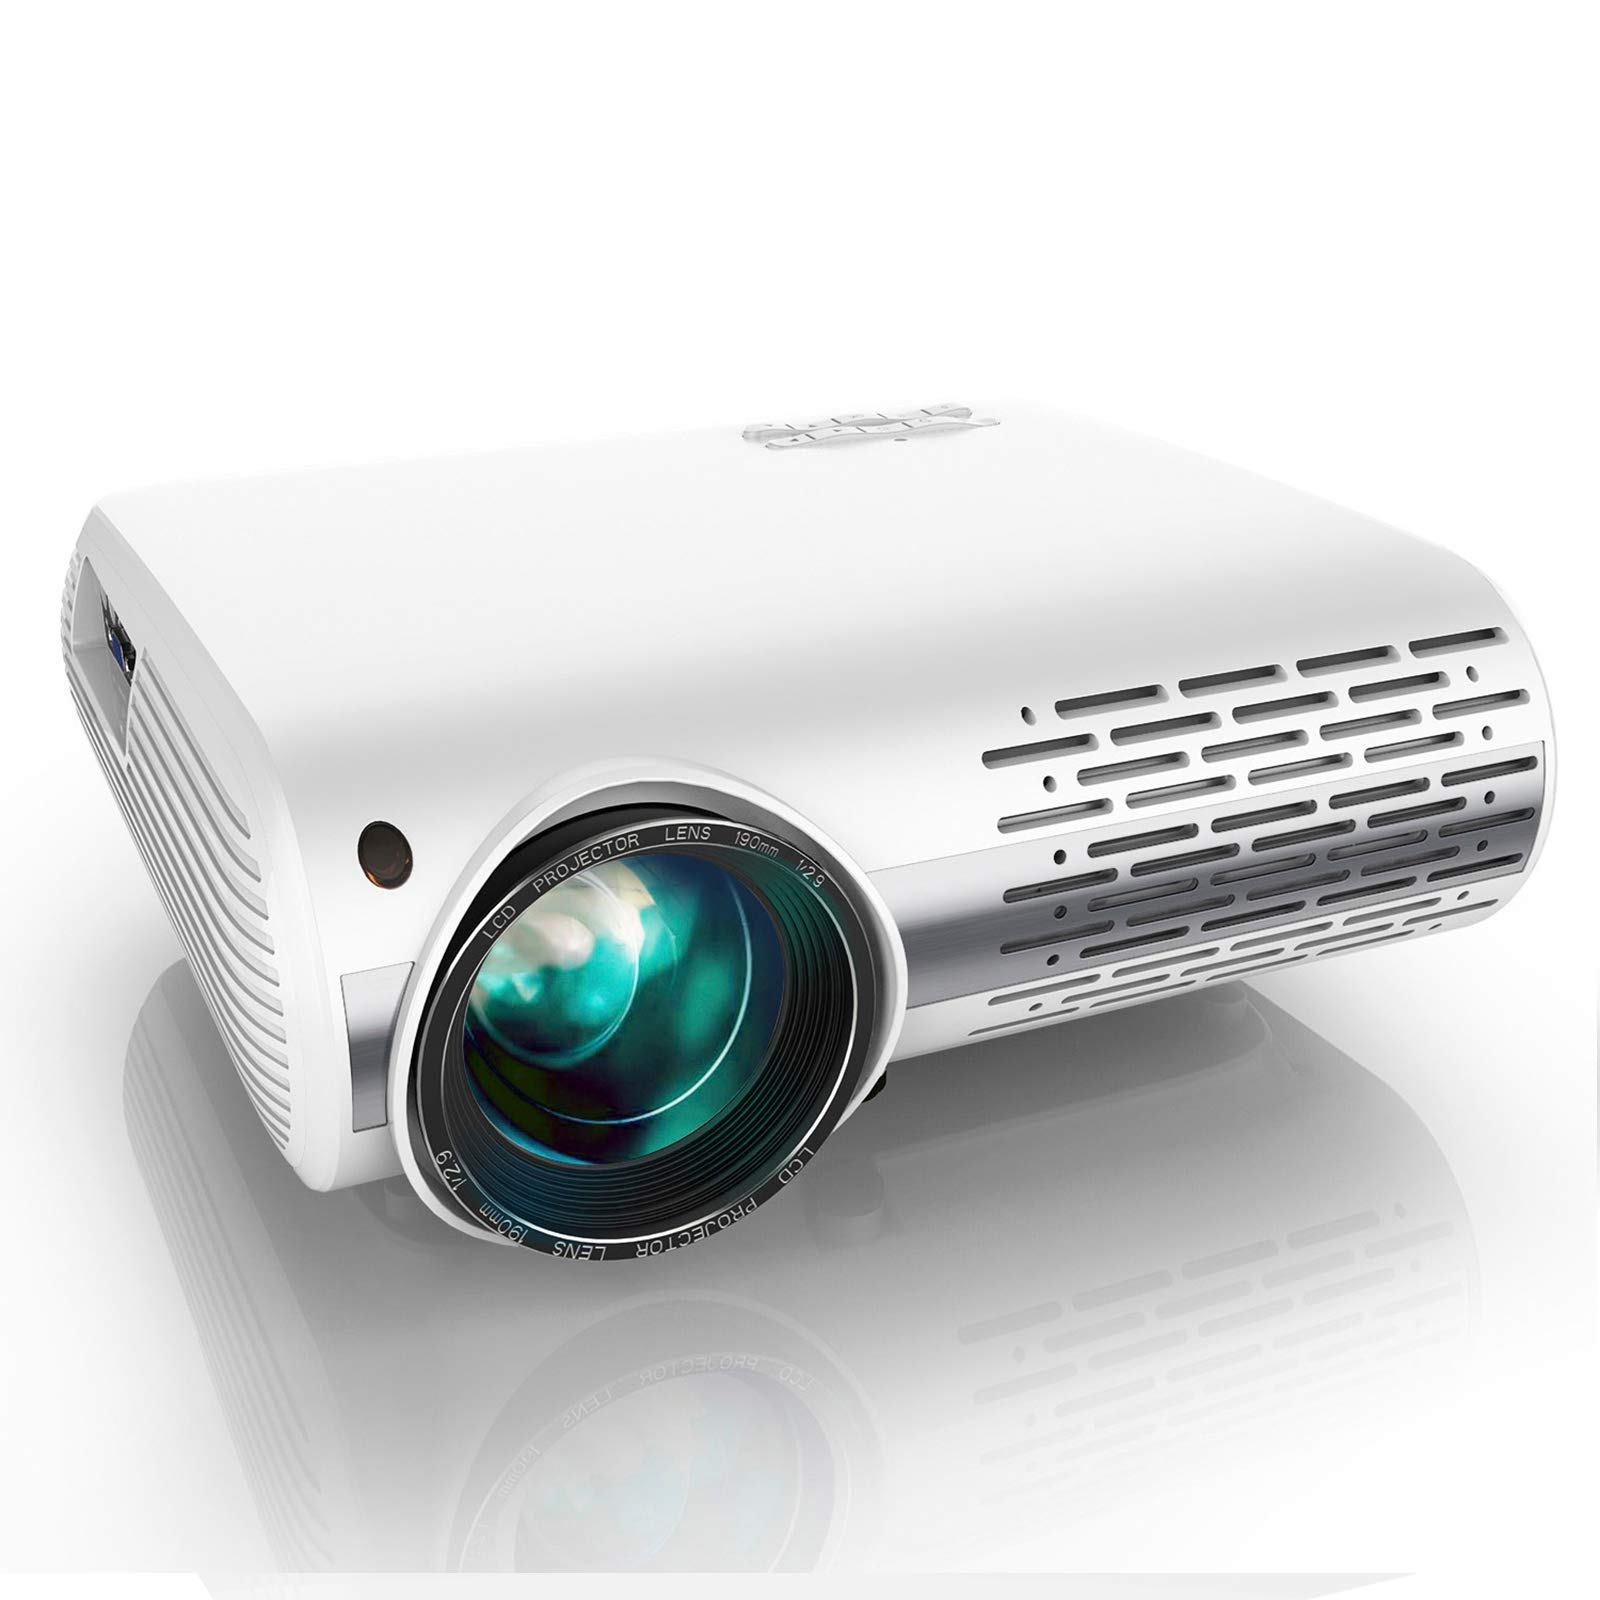 YABER Y30 Native 1080P Projector 8000L Full HD Video Projector 1920 x 1080, ±50° 4D Keystone Correction Support 4k & Zoom,LCD LED Home Theater Projector Compatible with Phone,PC,TV Box,PS4 (White)